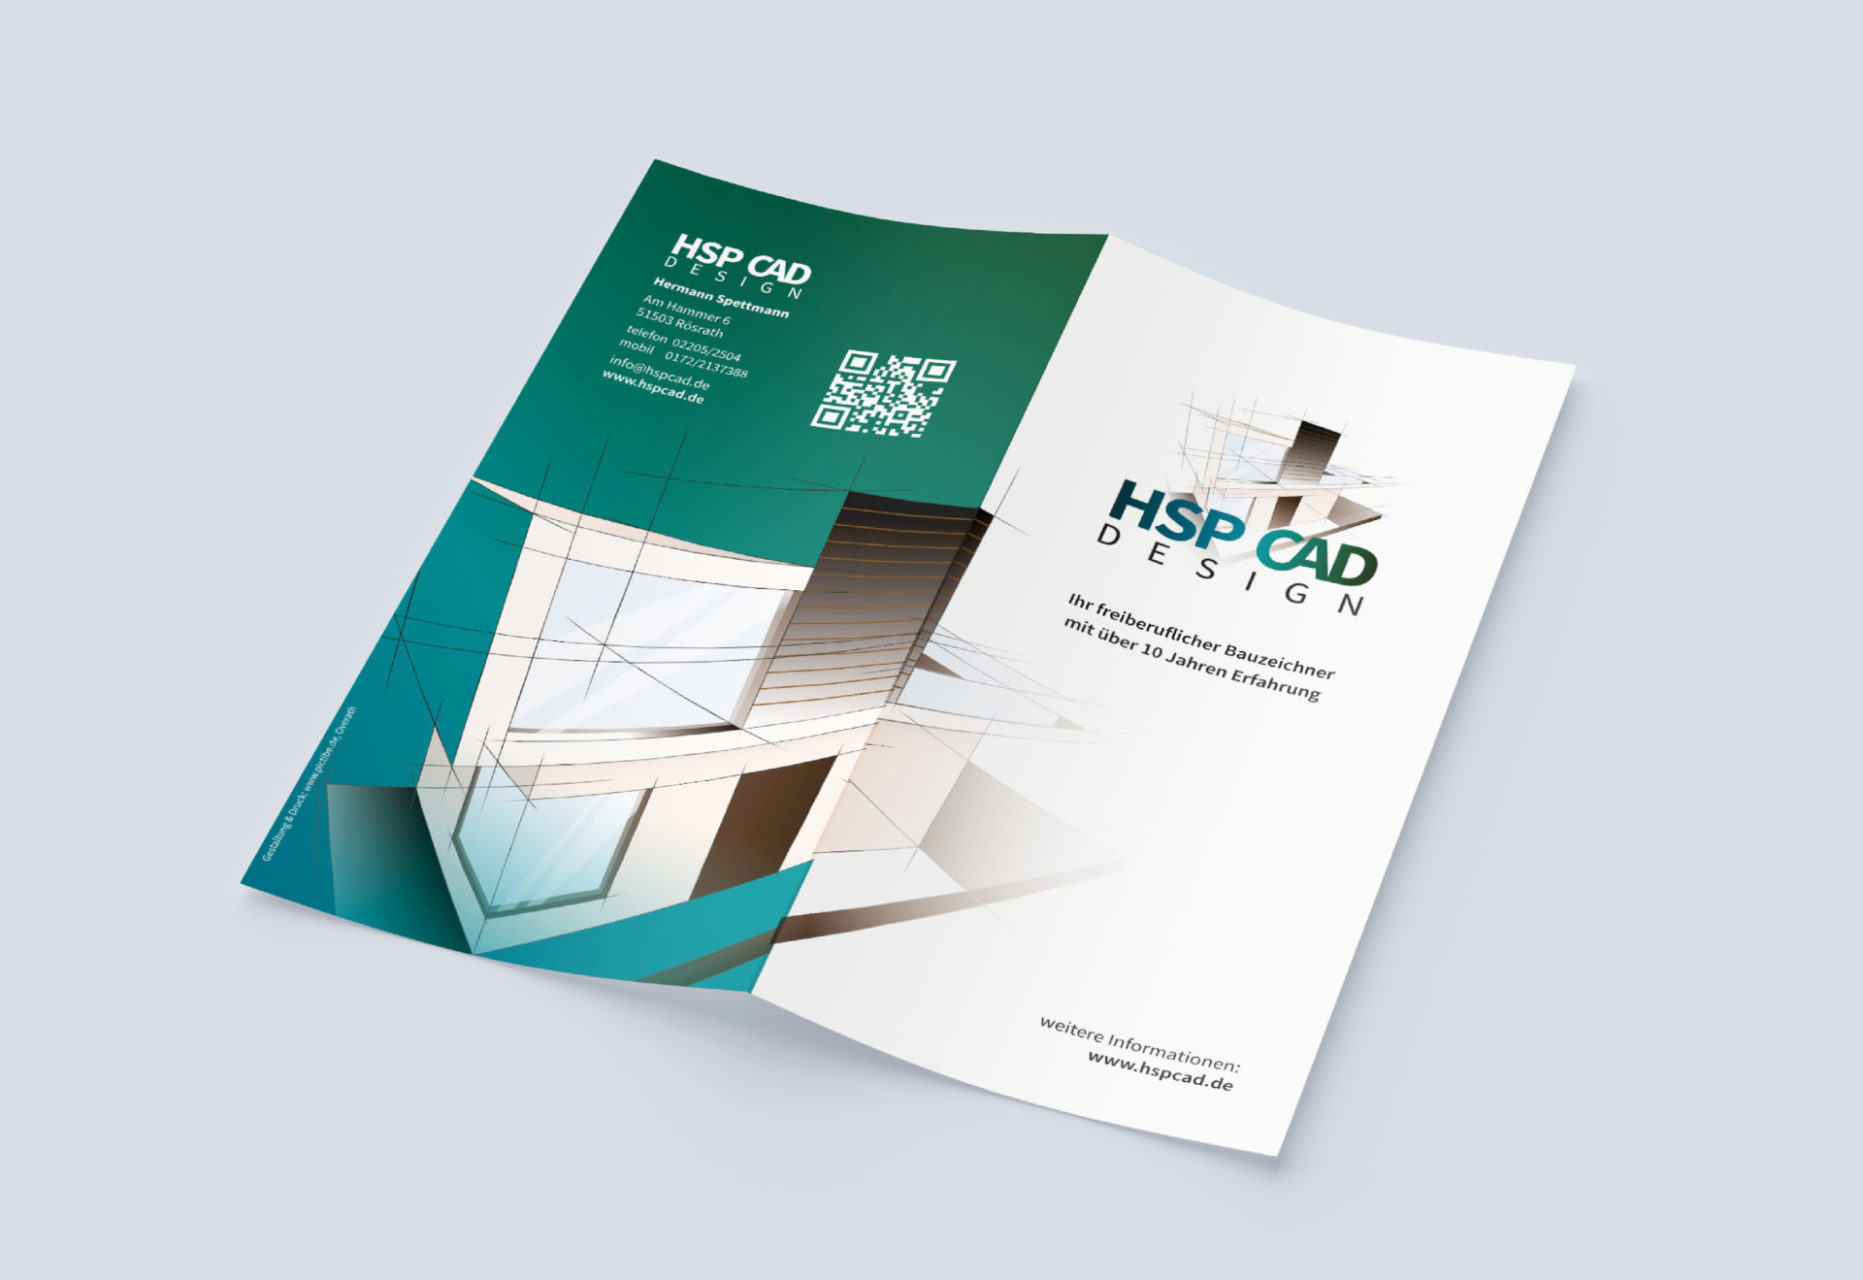 Hsp Cad Referenz 8 Print Druck Flyer